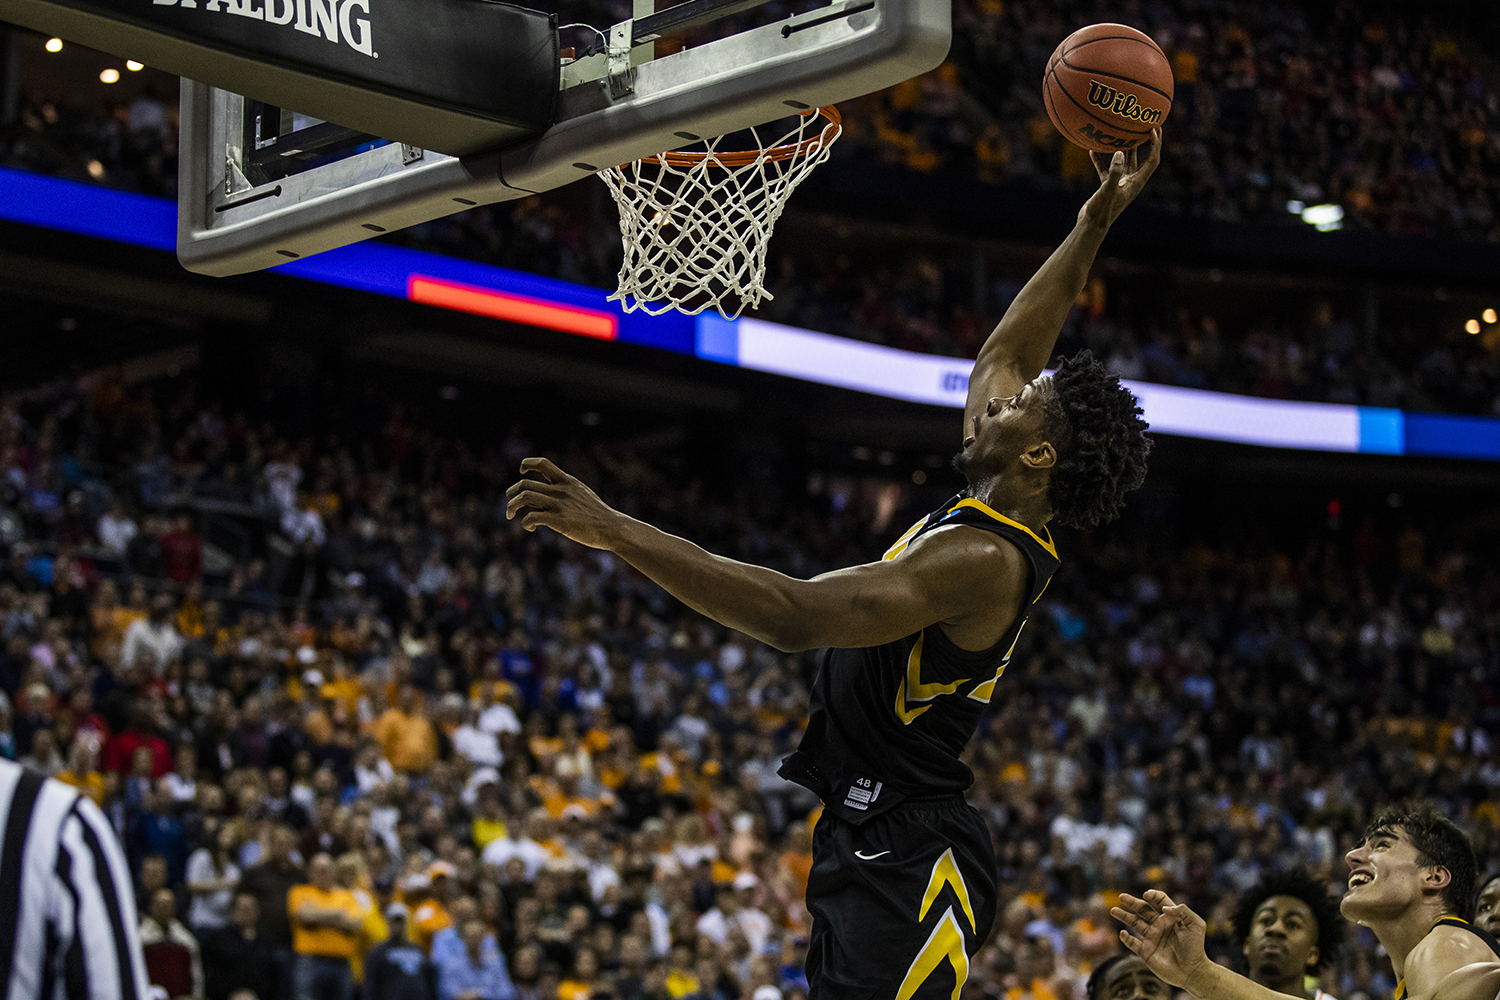 Iowa forward Tyler Cook dunks the ball during the NCAA game against Tennessee at Nationwide Arena on Sunday, March 24, 2019. The Volunteers defeated the Hawkeyes 83-77 in overtime.